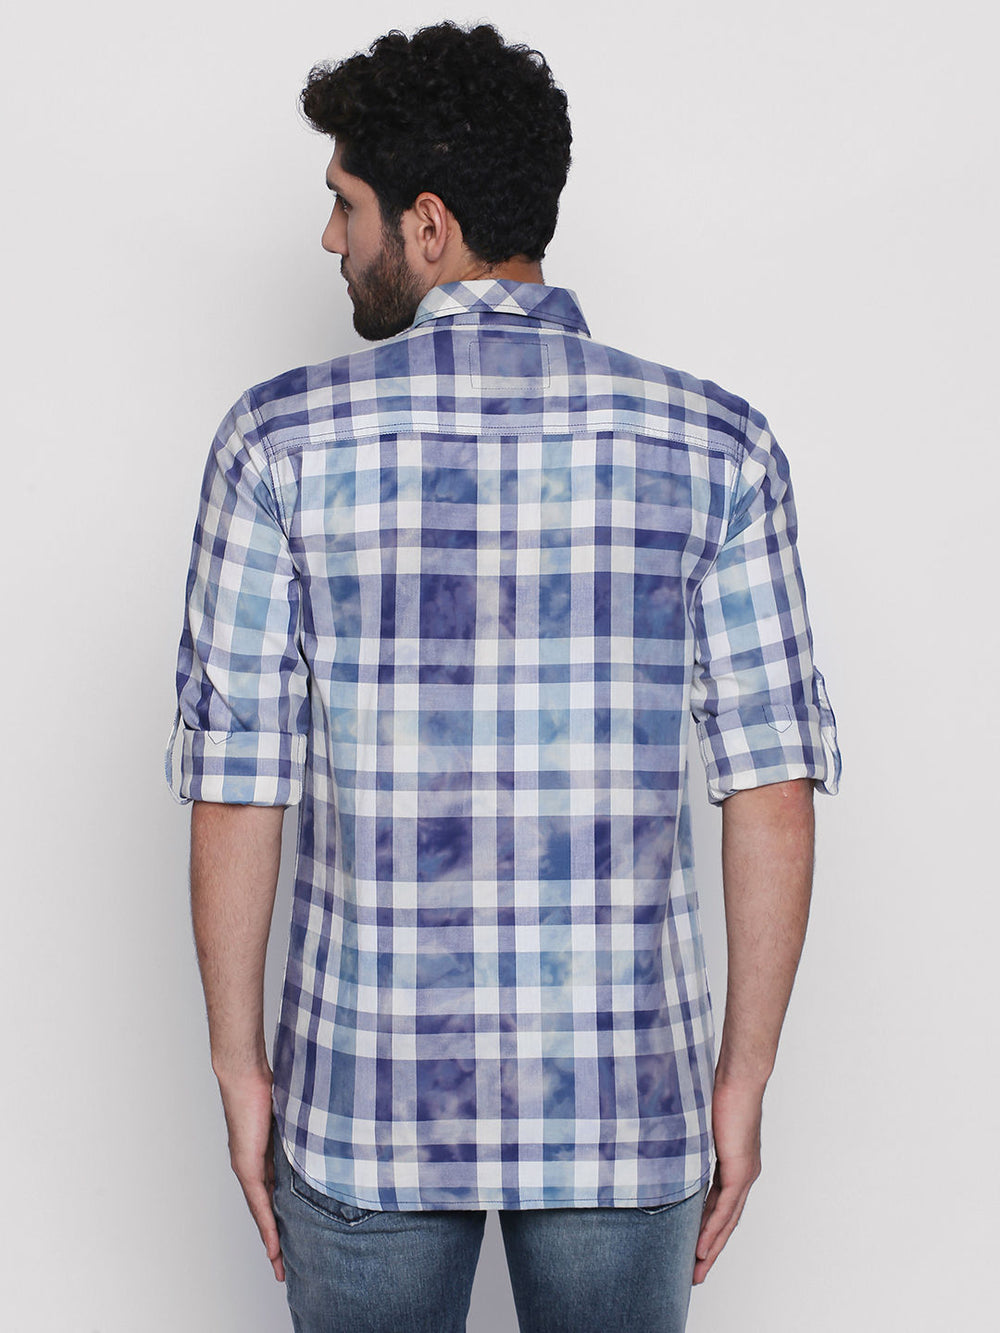 Disrupt Blue Cotton Fabric Full Sleeve Checkered Shirt